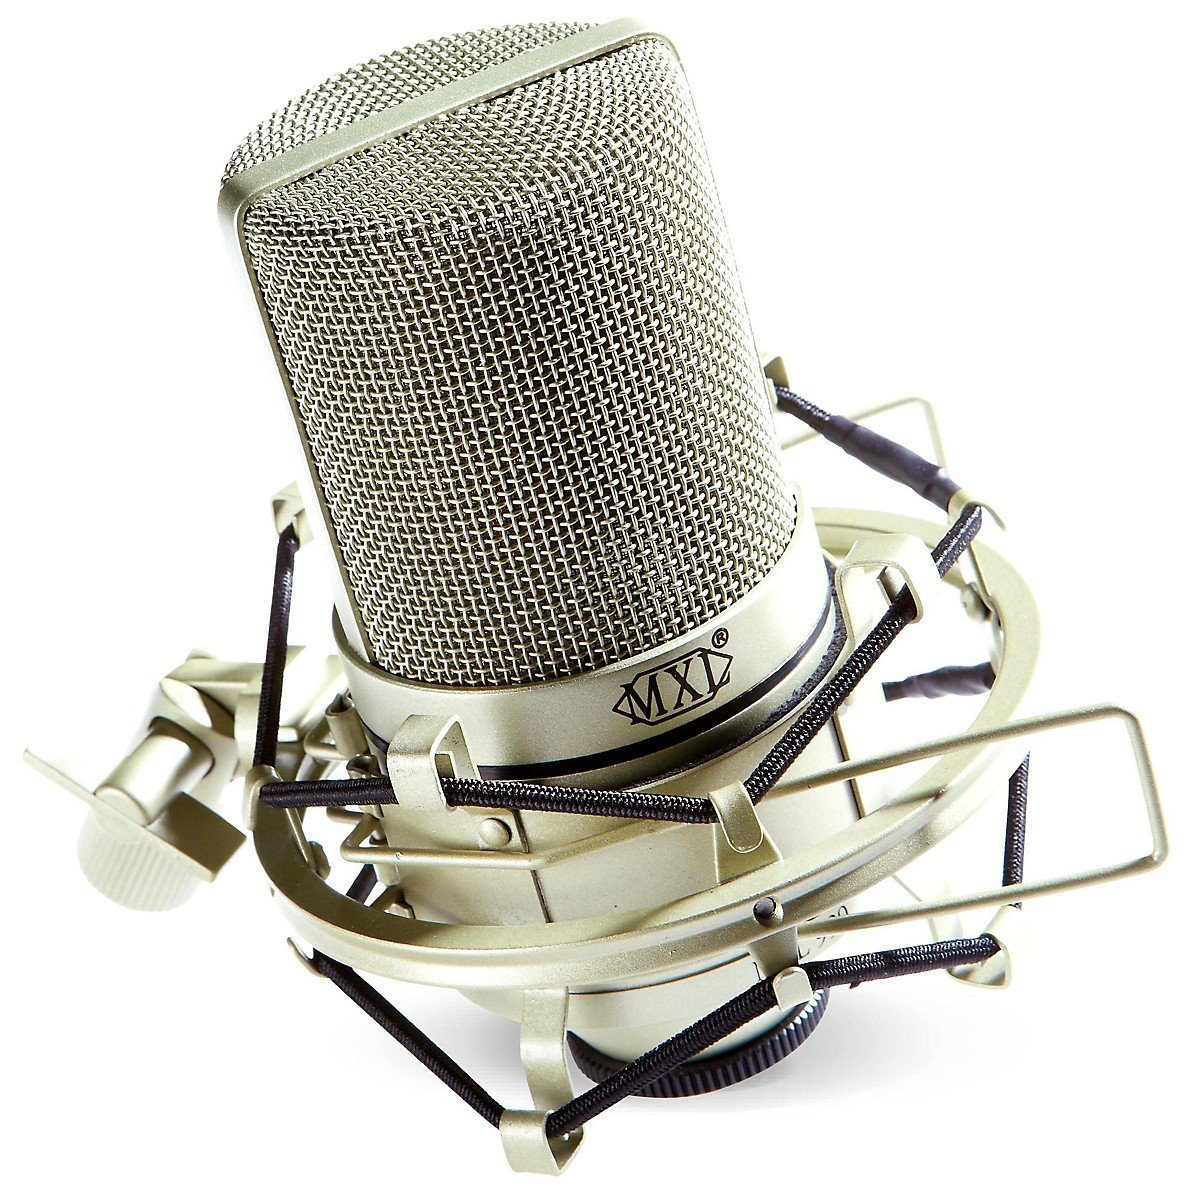 Best Budget Microphones for Podcasting - MXL 990 Condenser Microphone